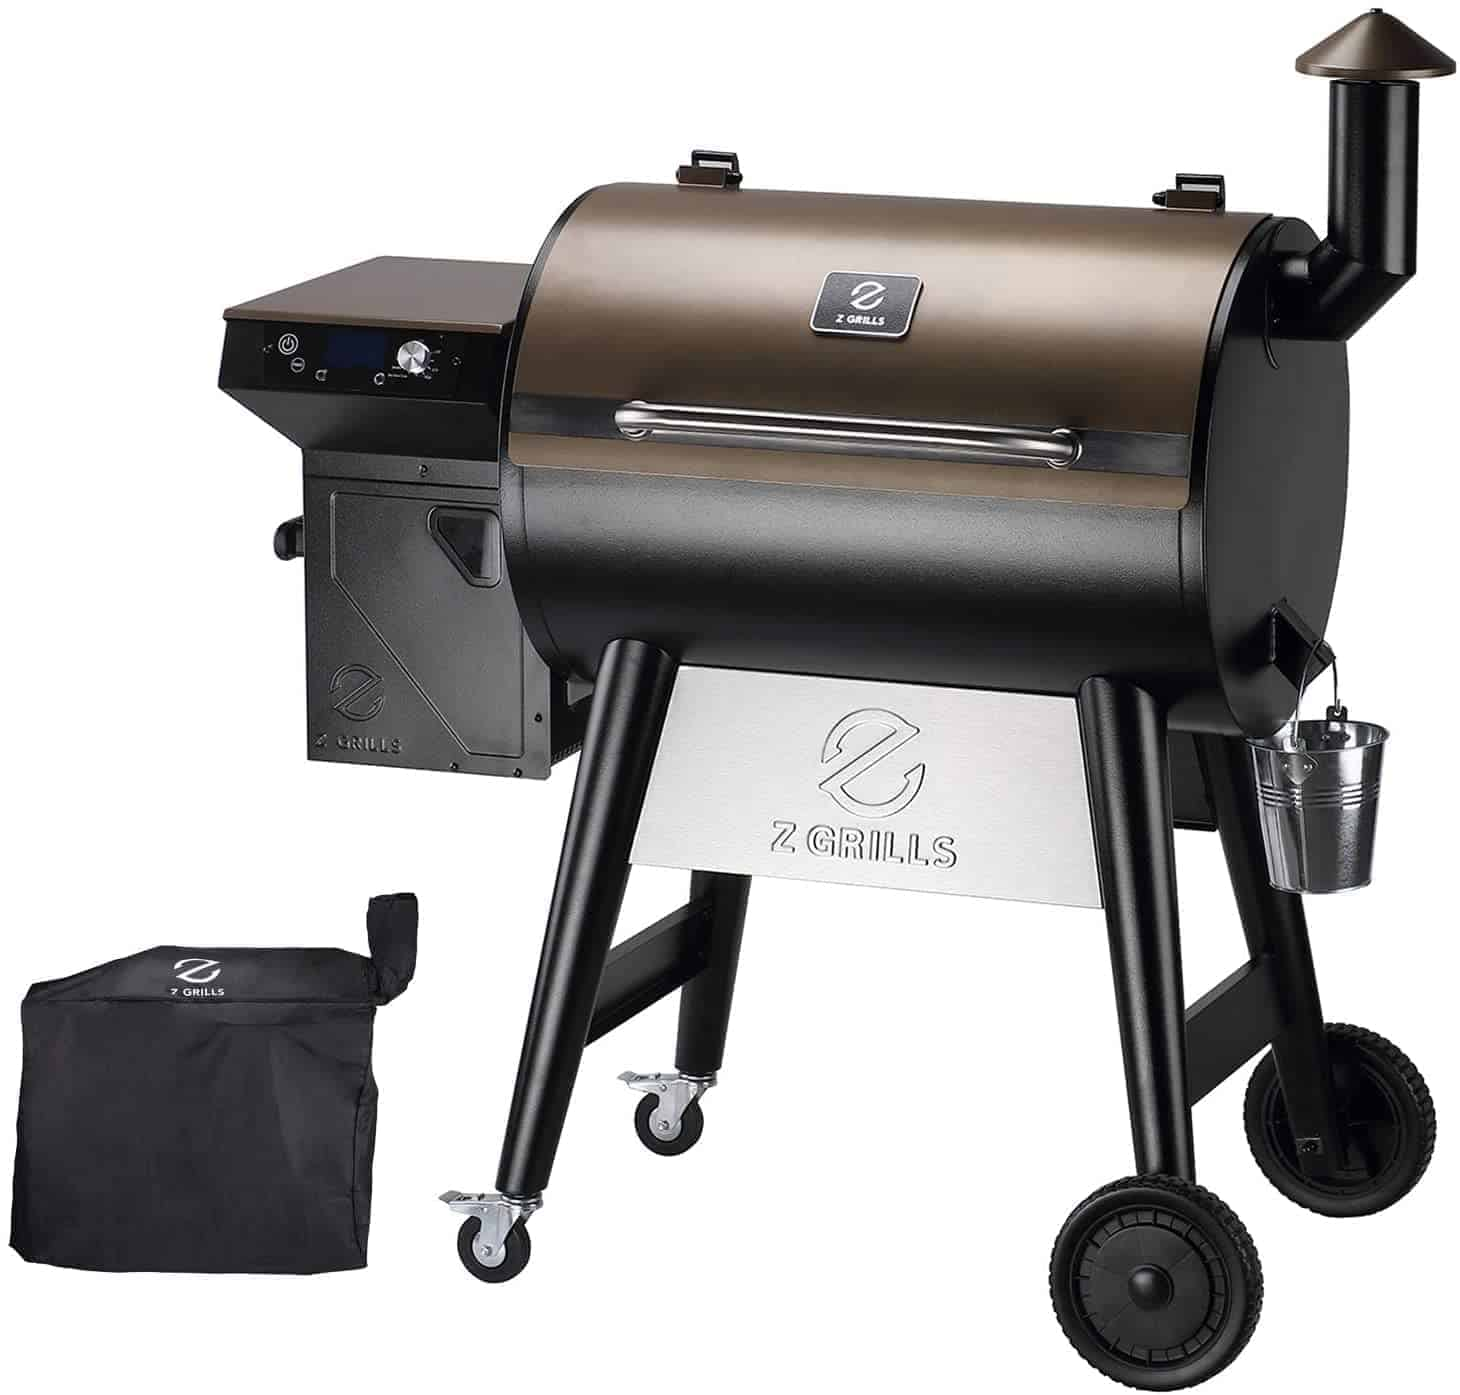 Z Grills 7002F Grill and Smoker Combo - everymanscave.com